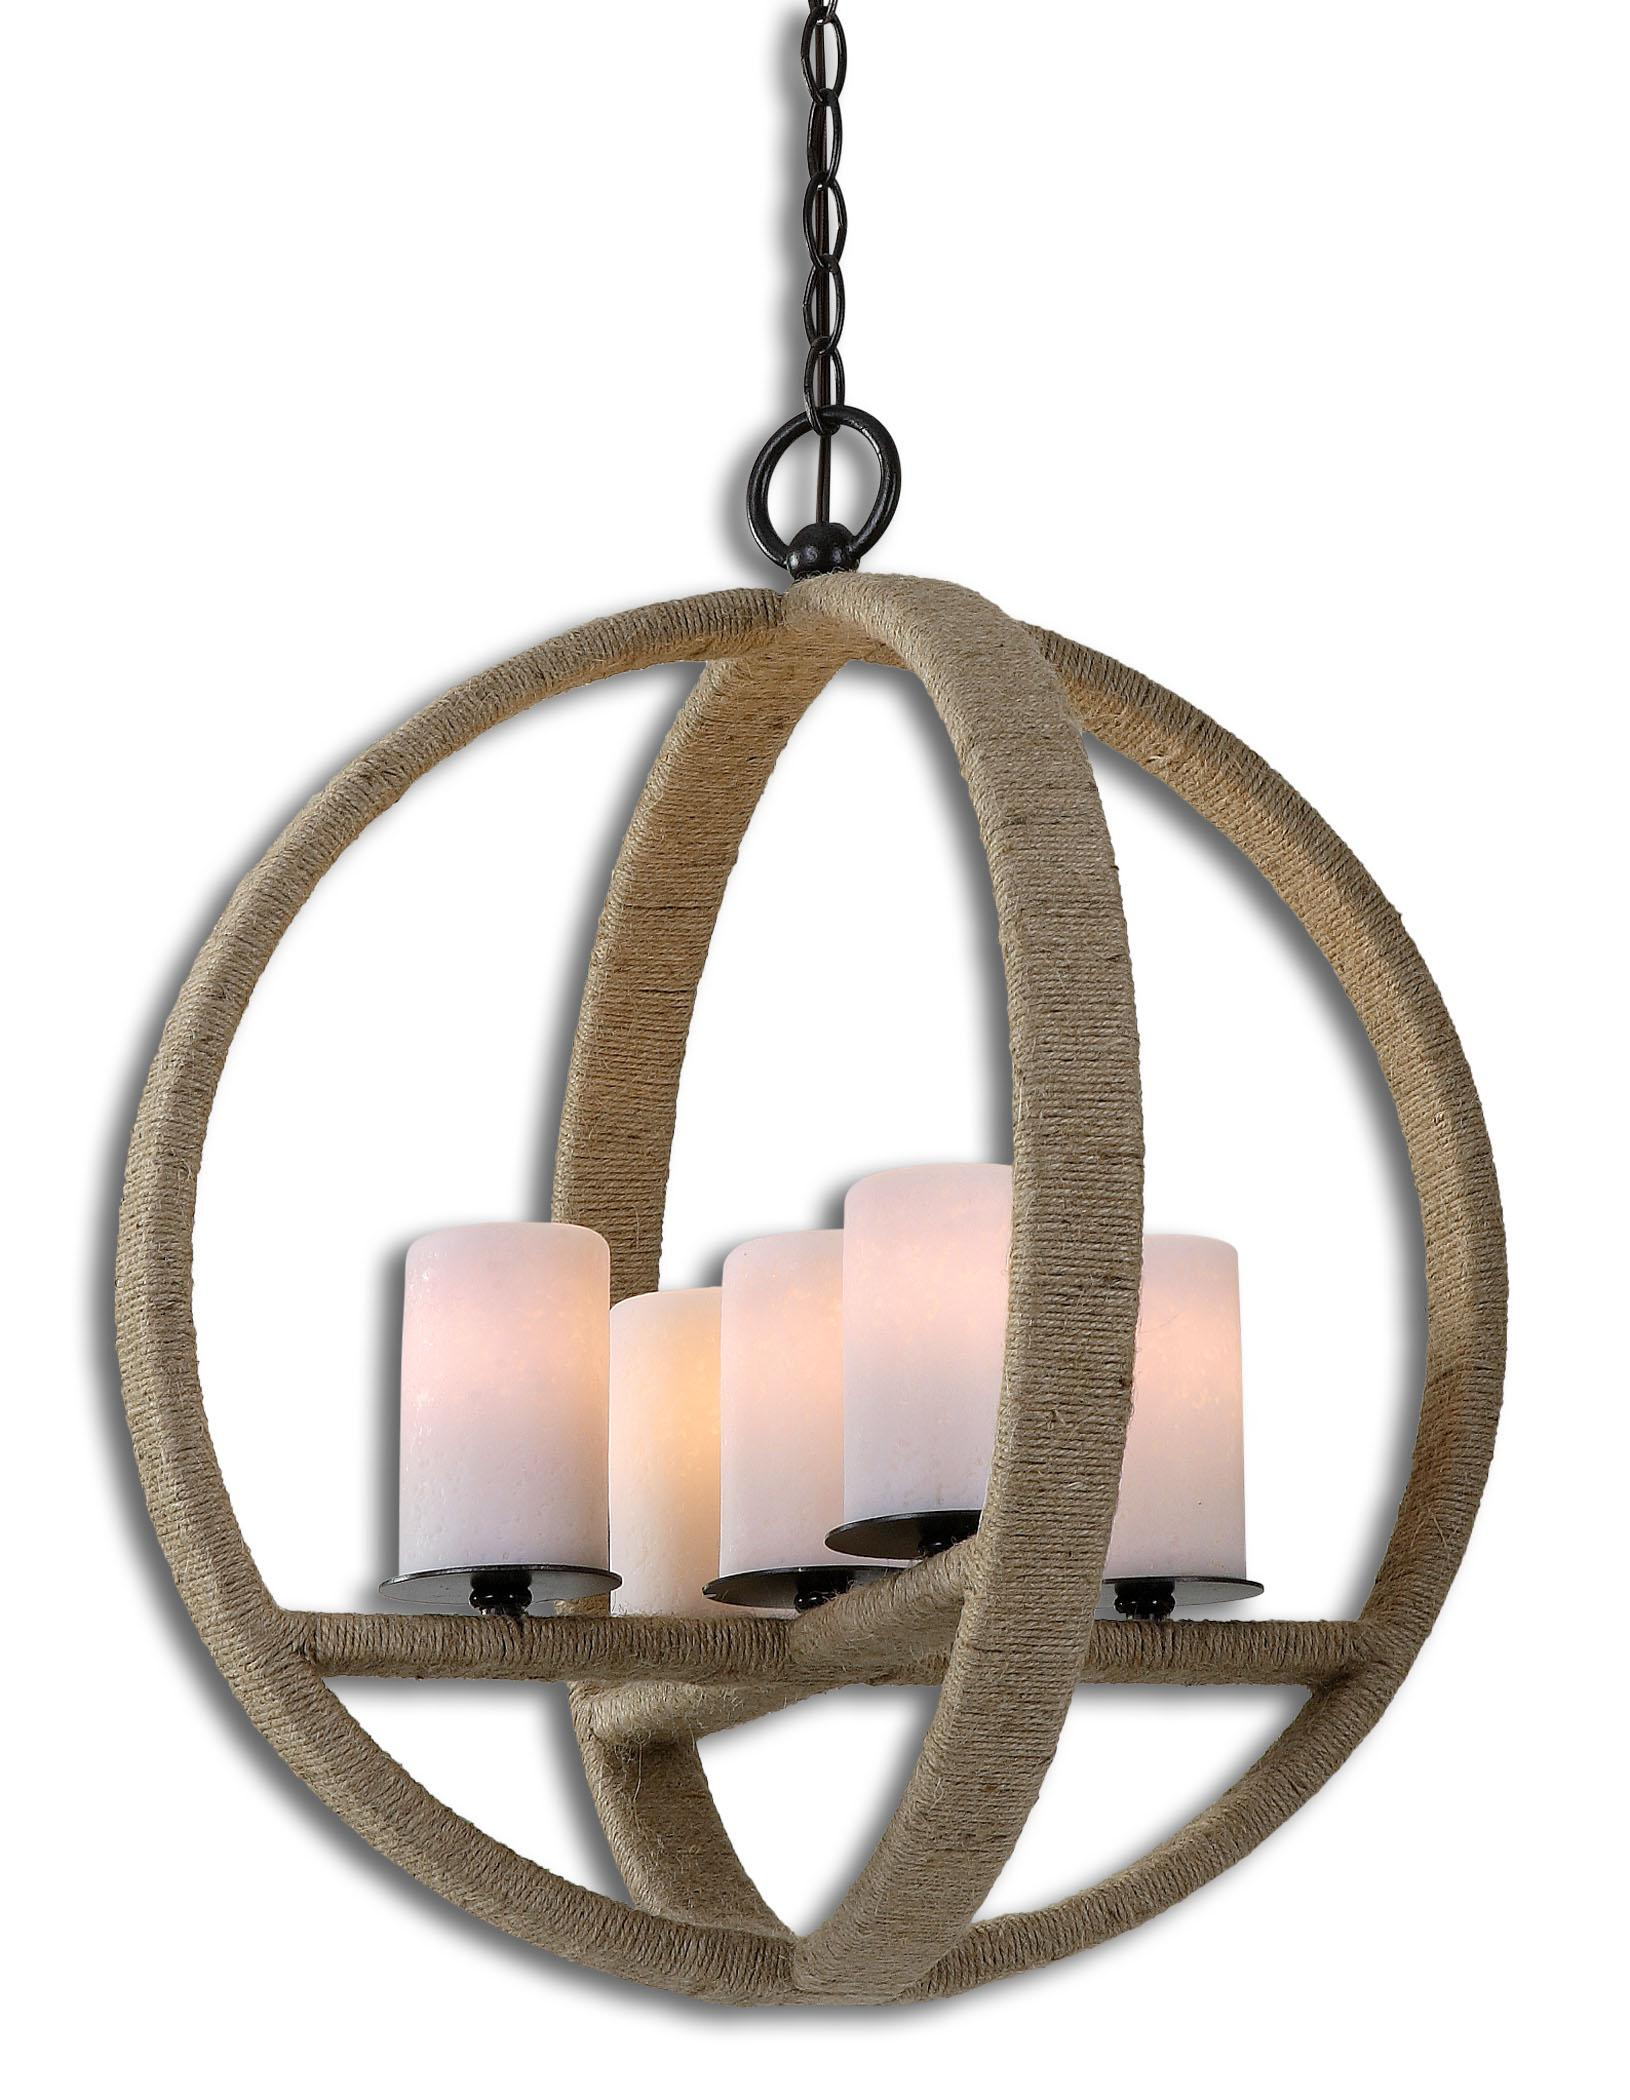 Uttermost Lighting Fixtures Gironico Round 5 Light Pendant - Item Number: 21997